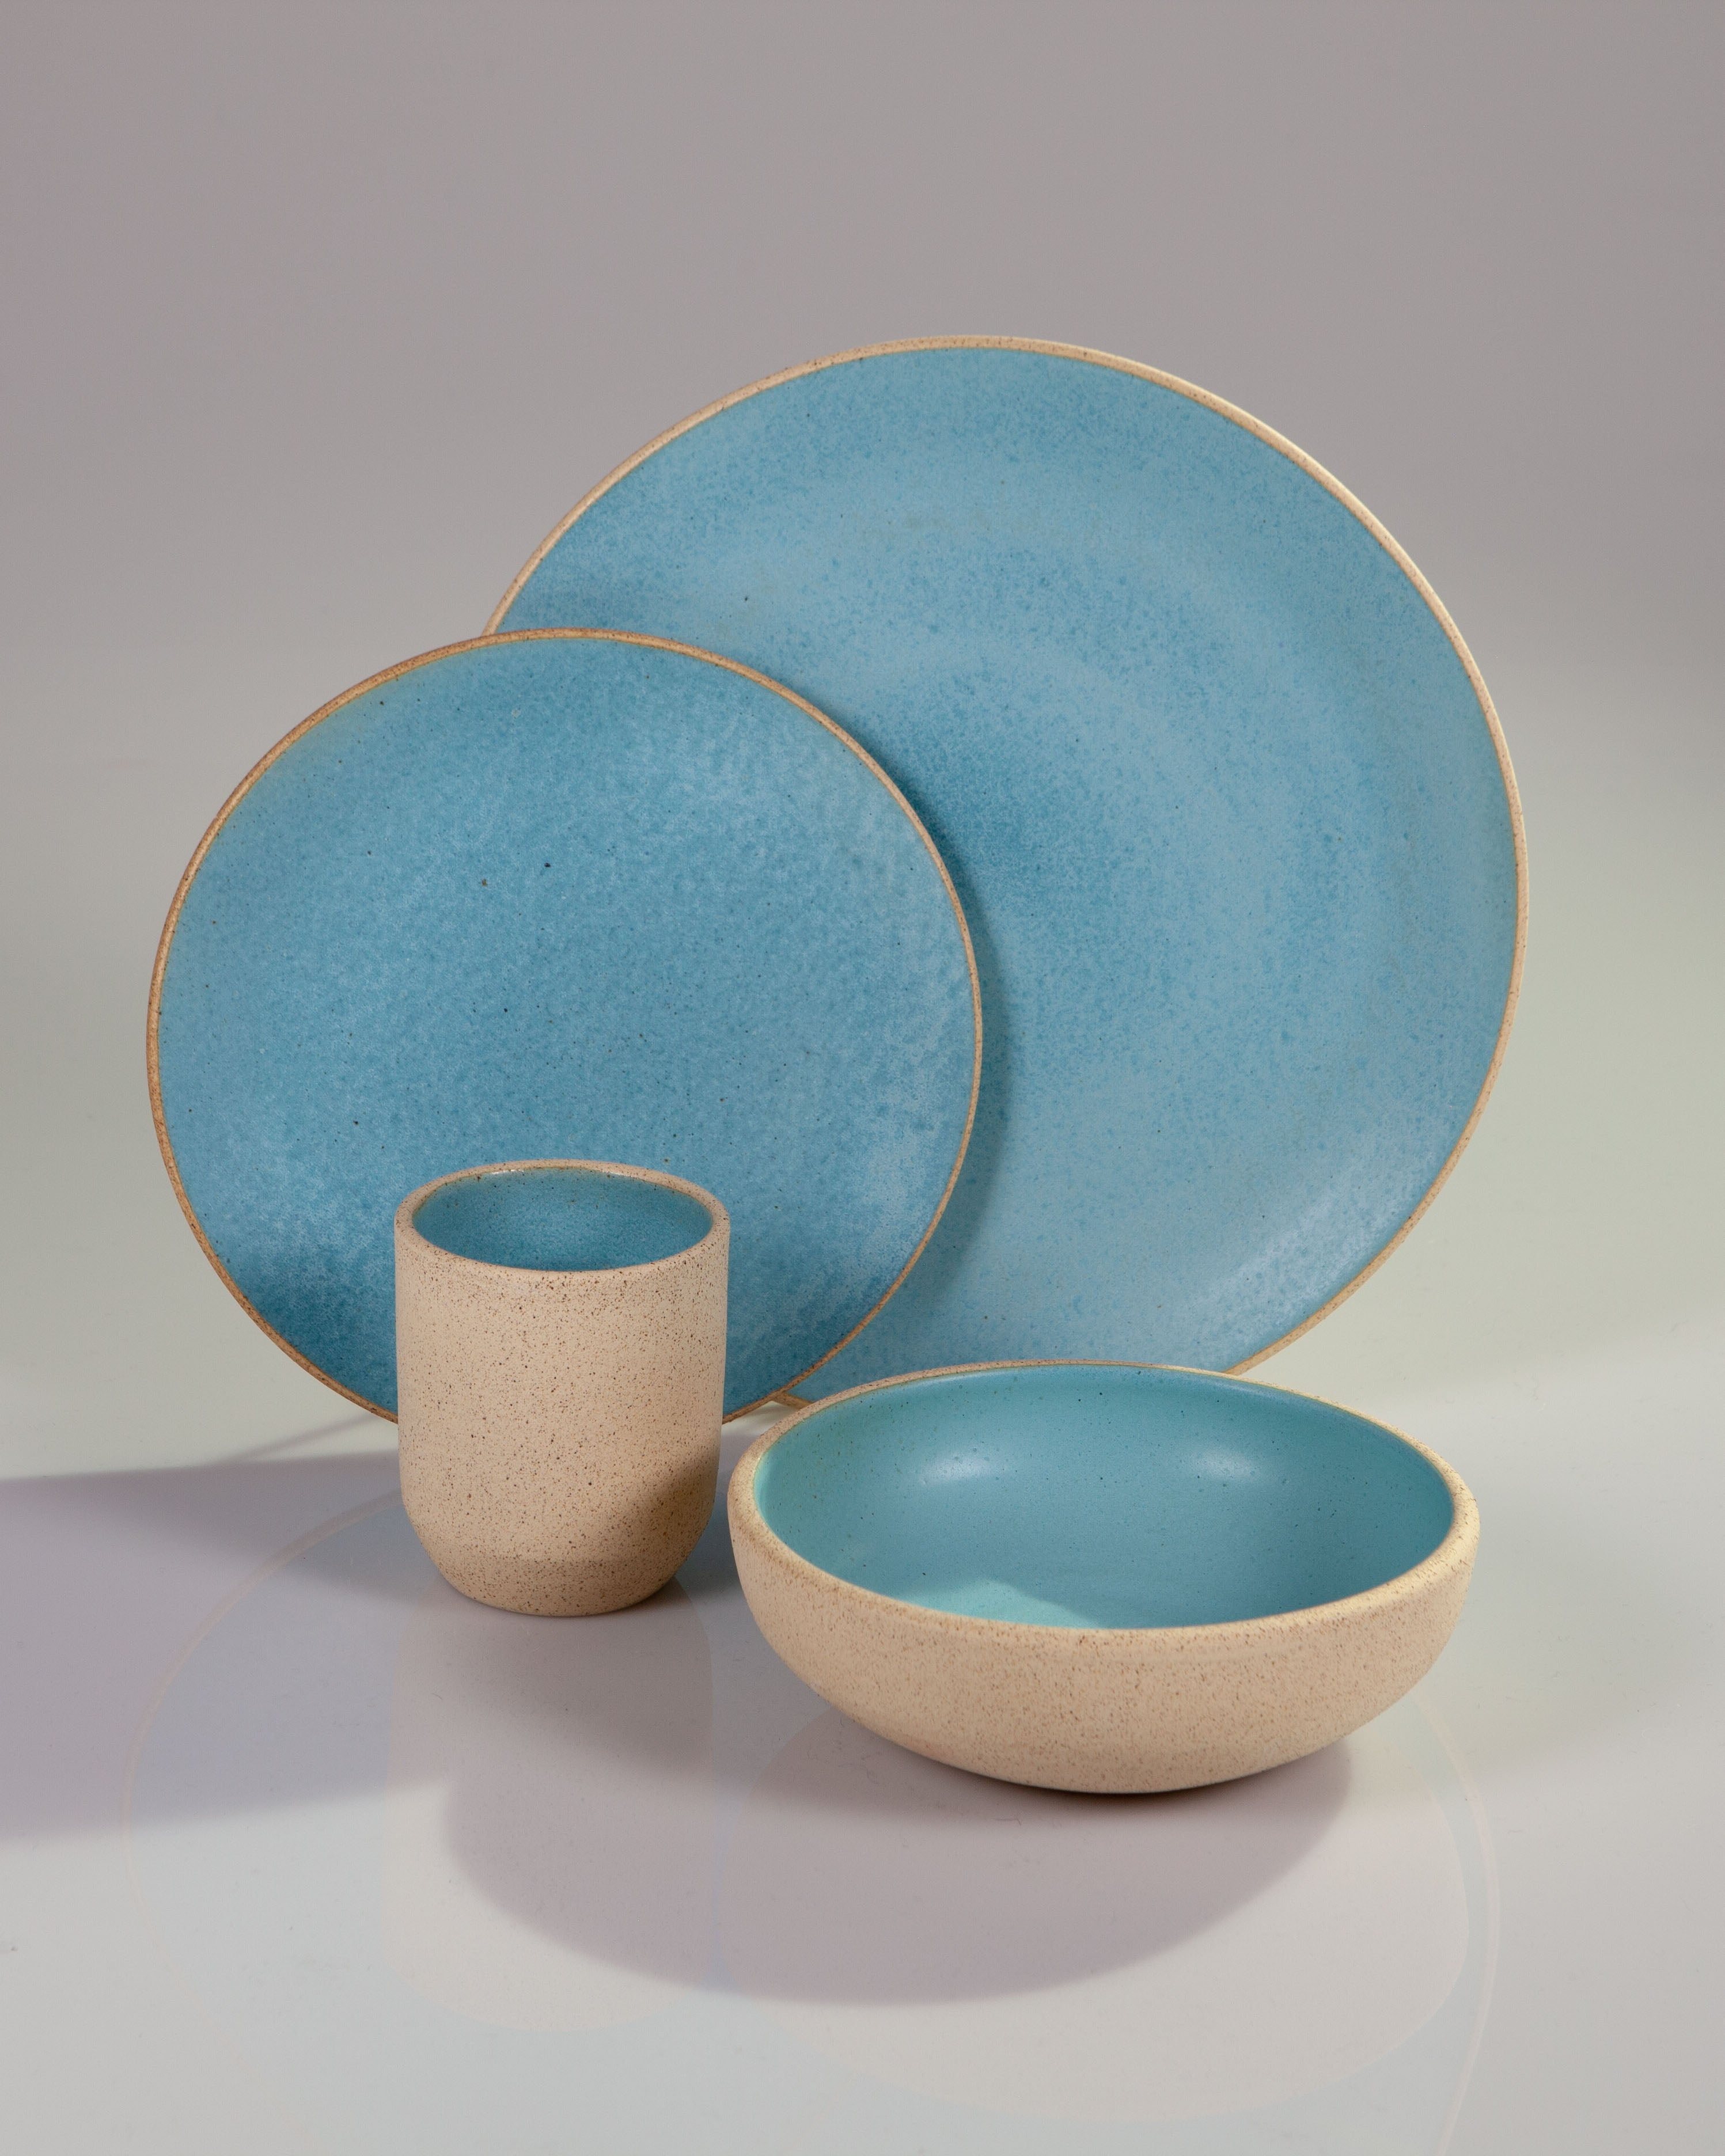 Handmade ceramic place setting plates bowl cup turquoise blue organic texture